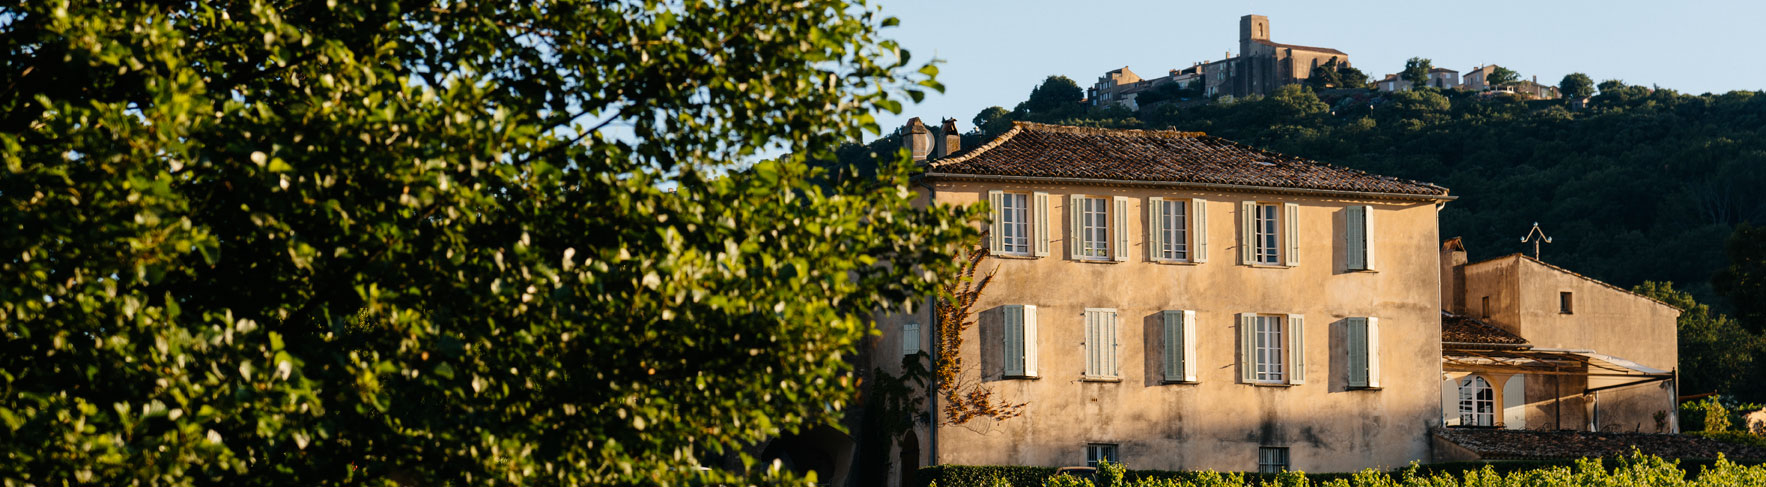 A house in a vineyard of barbeyrolles vineyard, Gassin, Frence